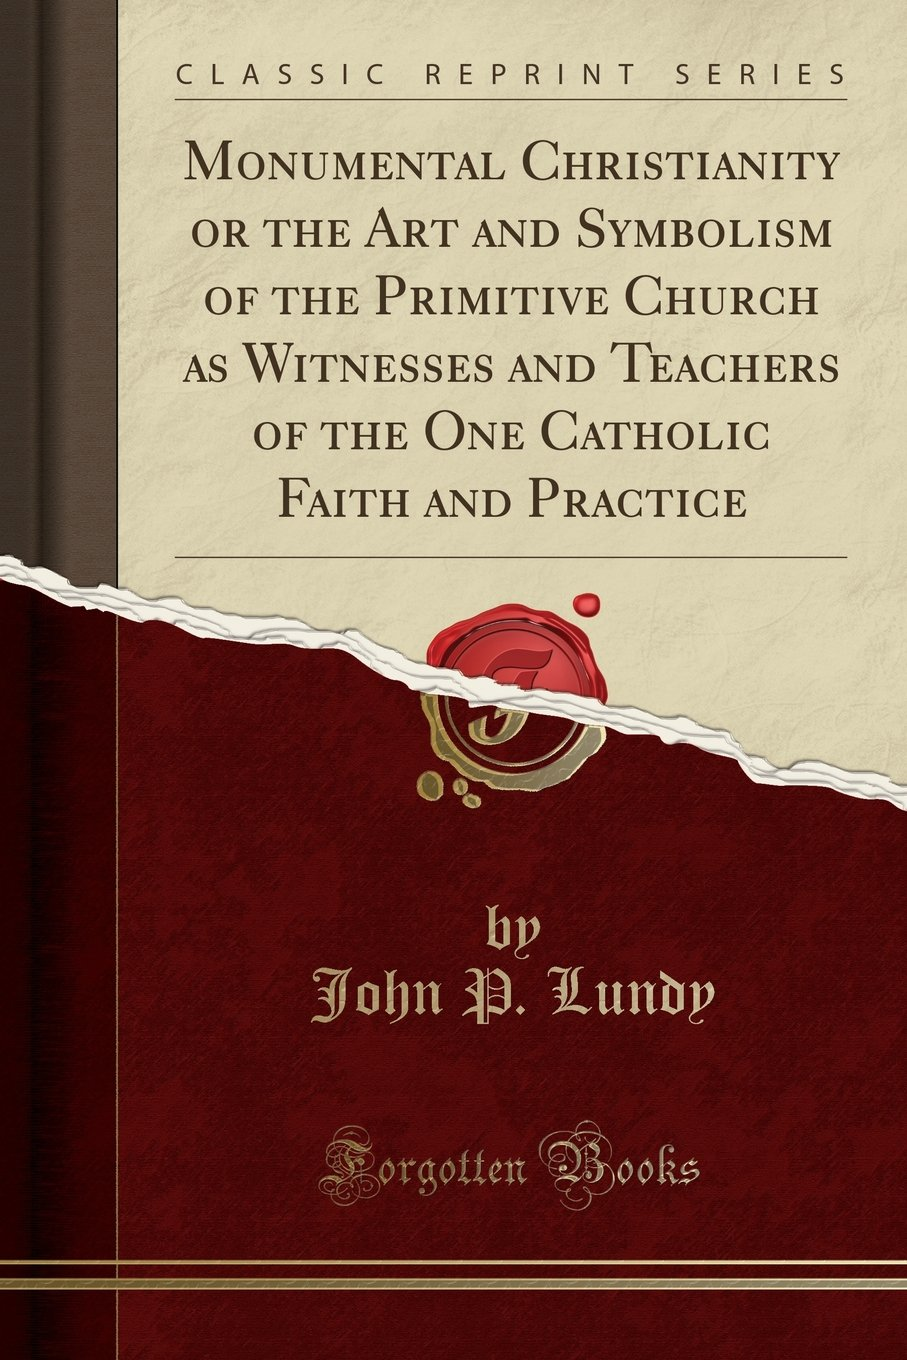 Download Monumental Christianity or the Art and Symbolism of the Primitive Church as Witnesses and Teachers of the One Catholic Faith and Practice (Classic Reprint) PDF